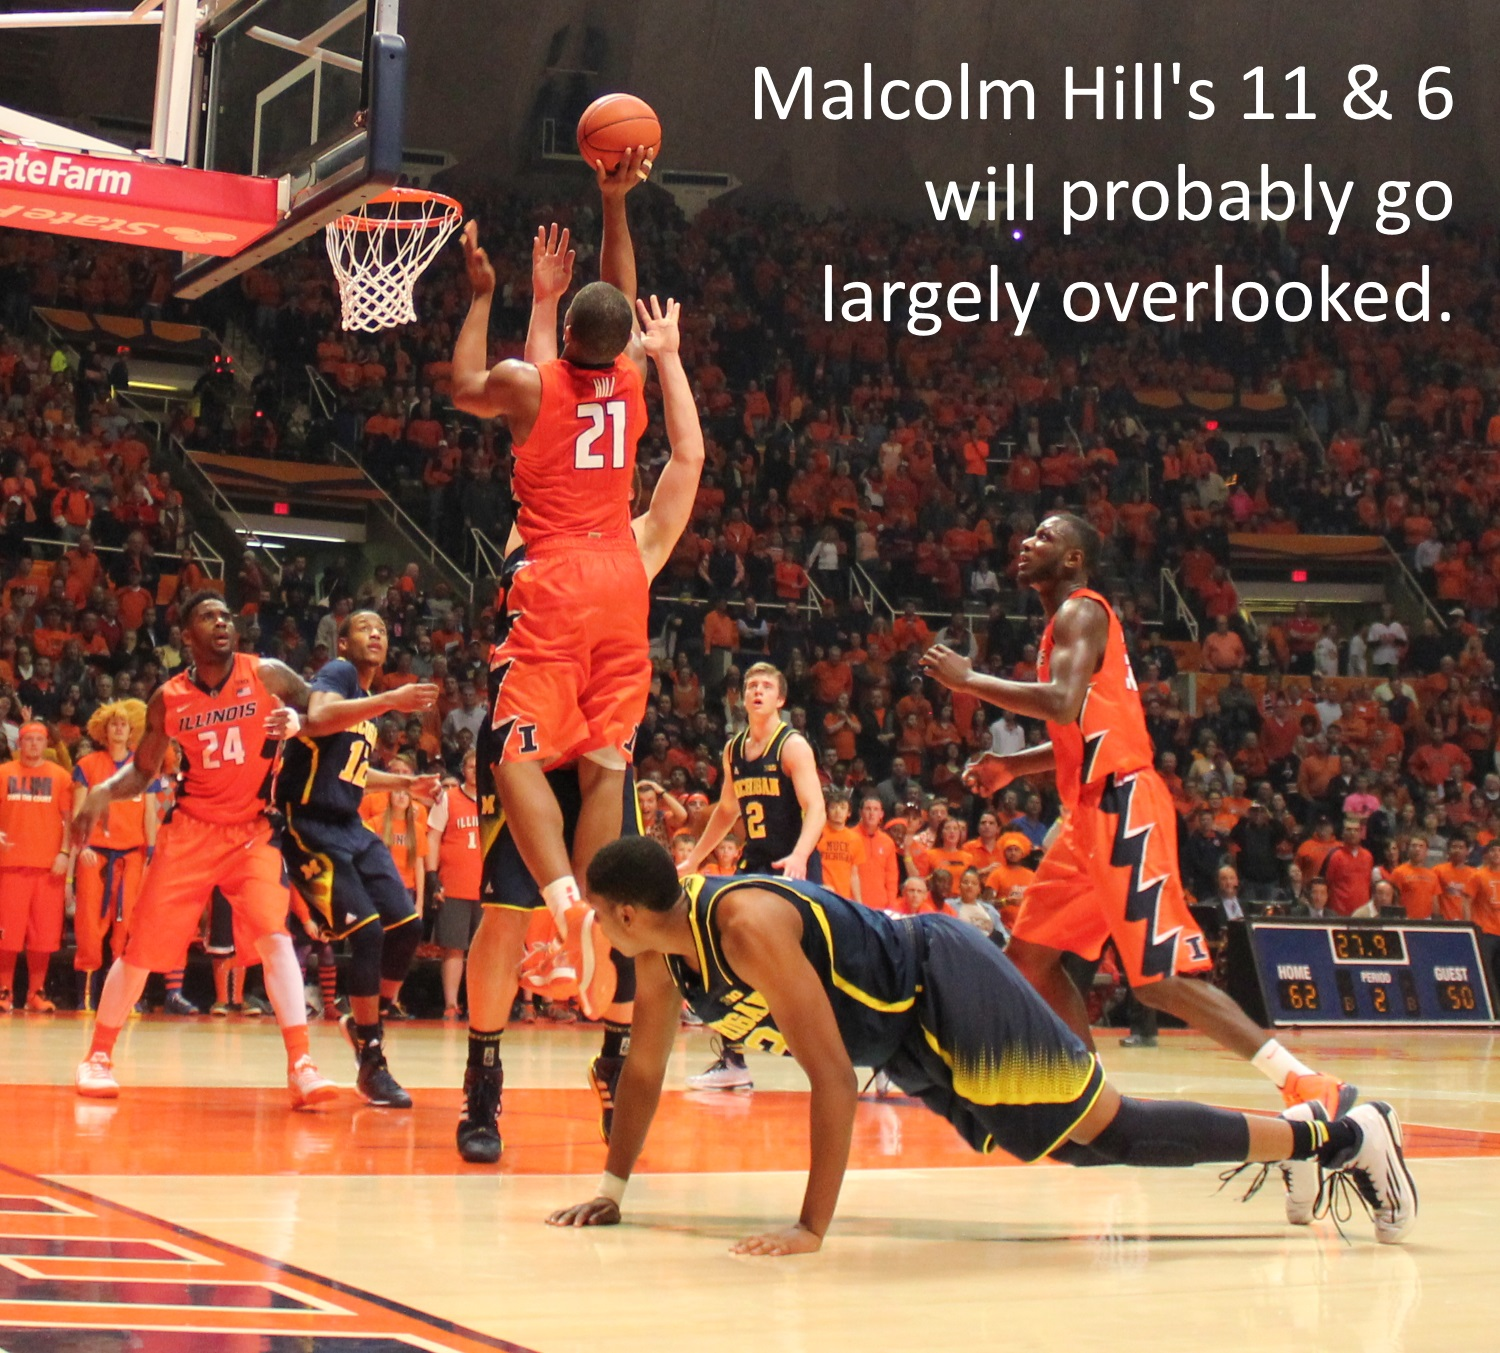 Malcolm Hill 11 and 6